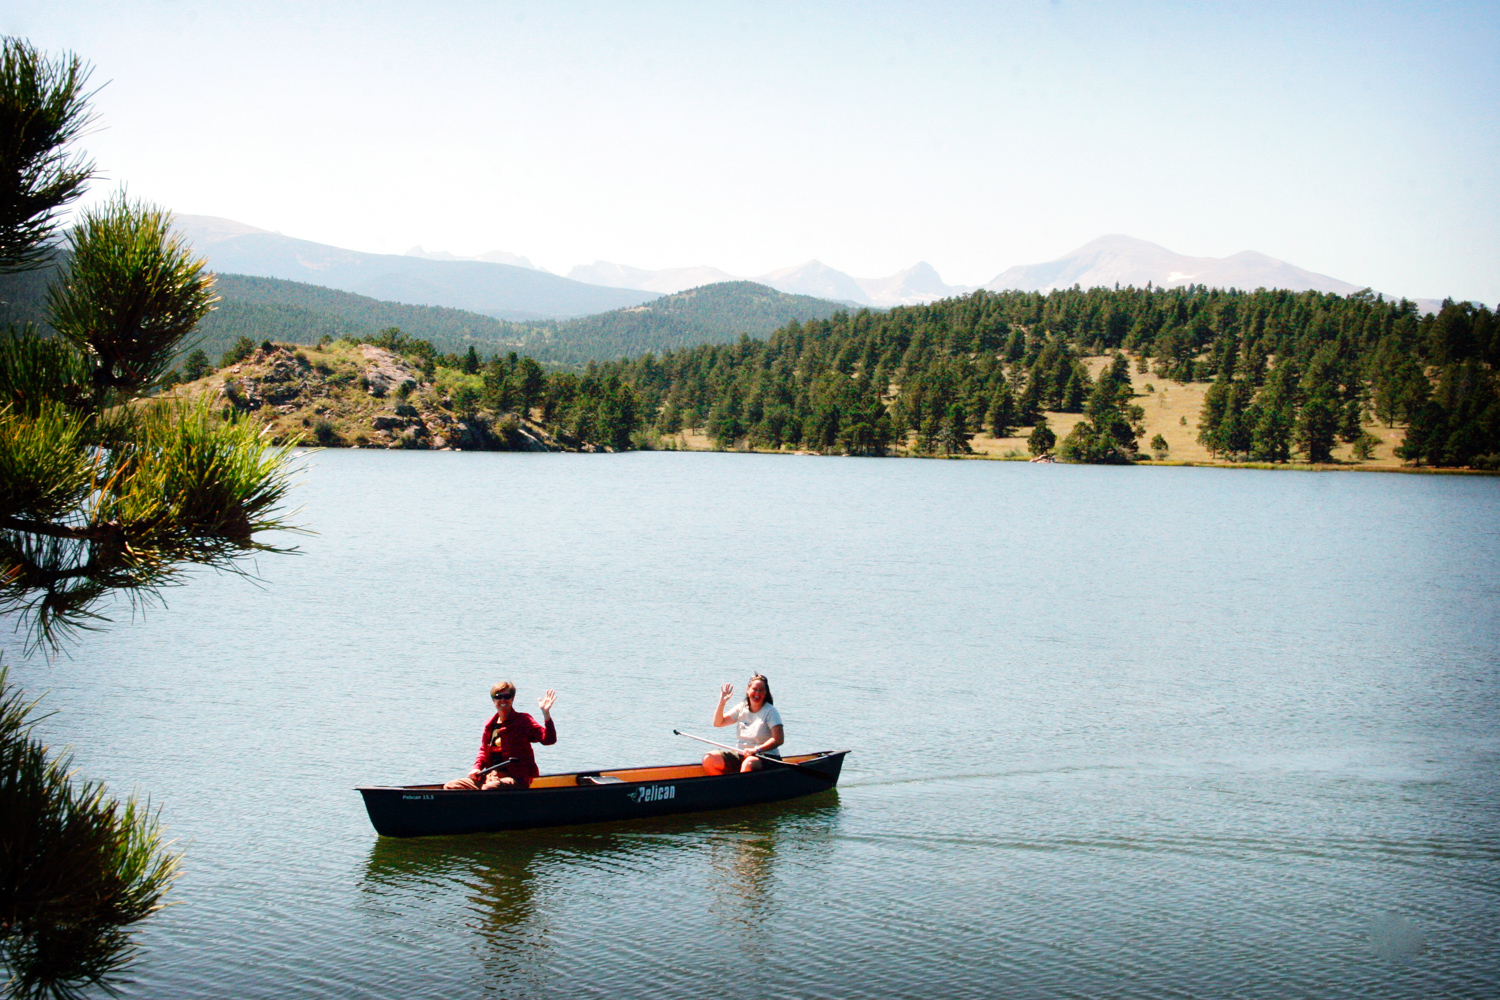 Gold_Lake_Resort_Wedding_002.JPG